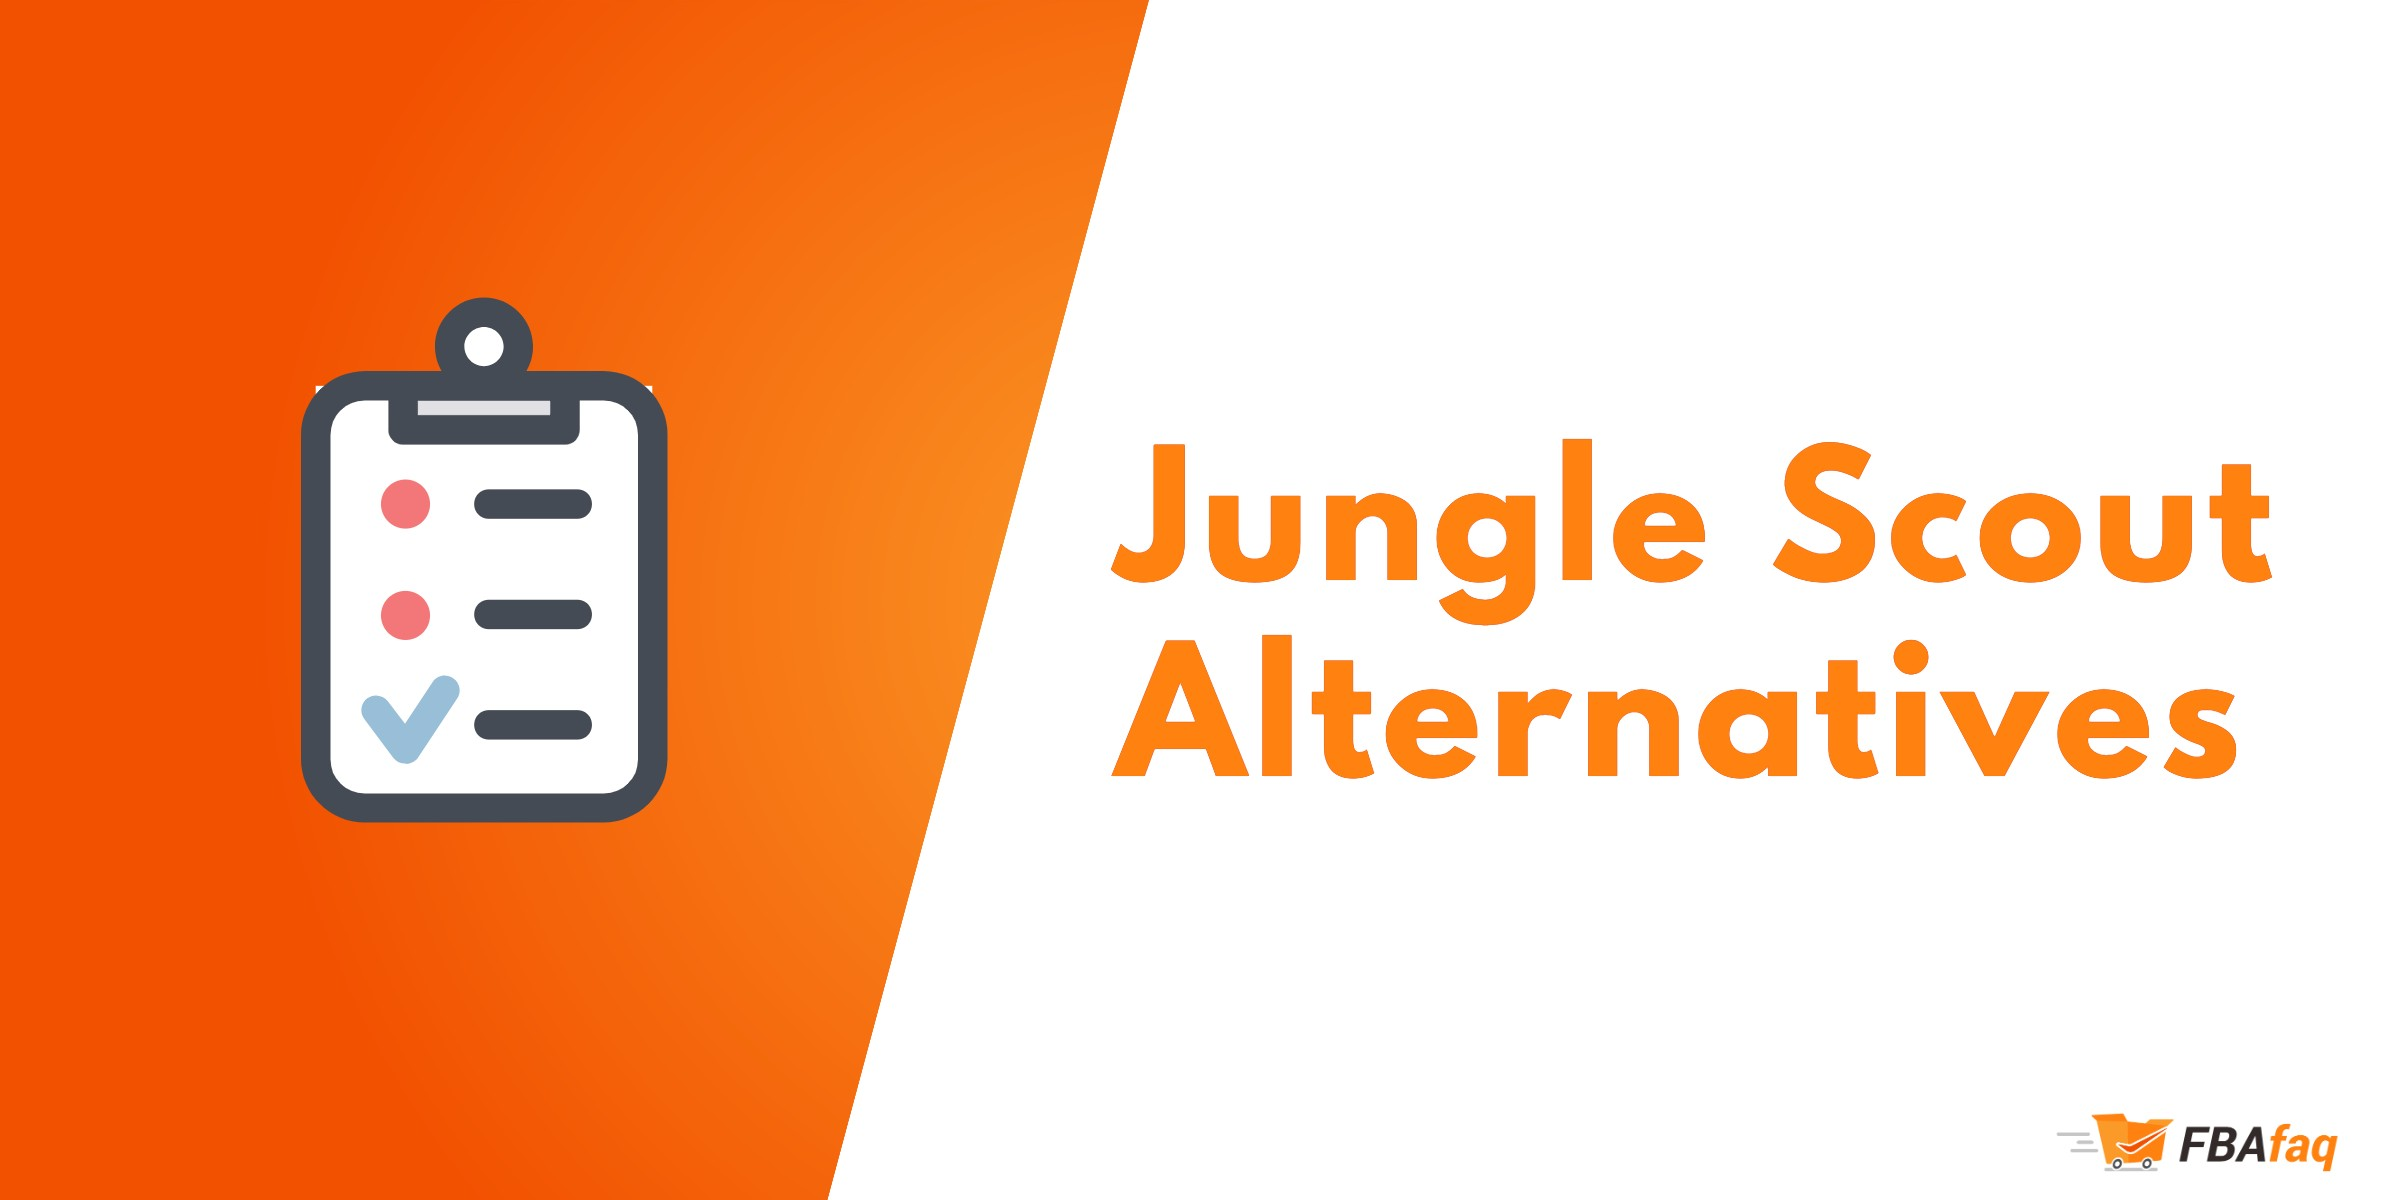 Jungle Scout Alternative